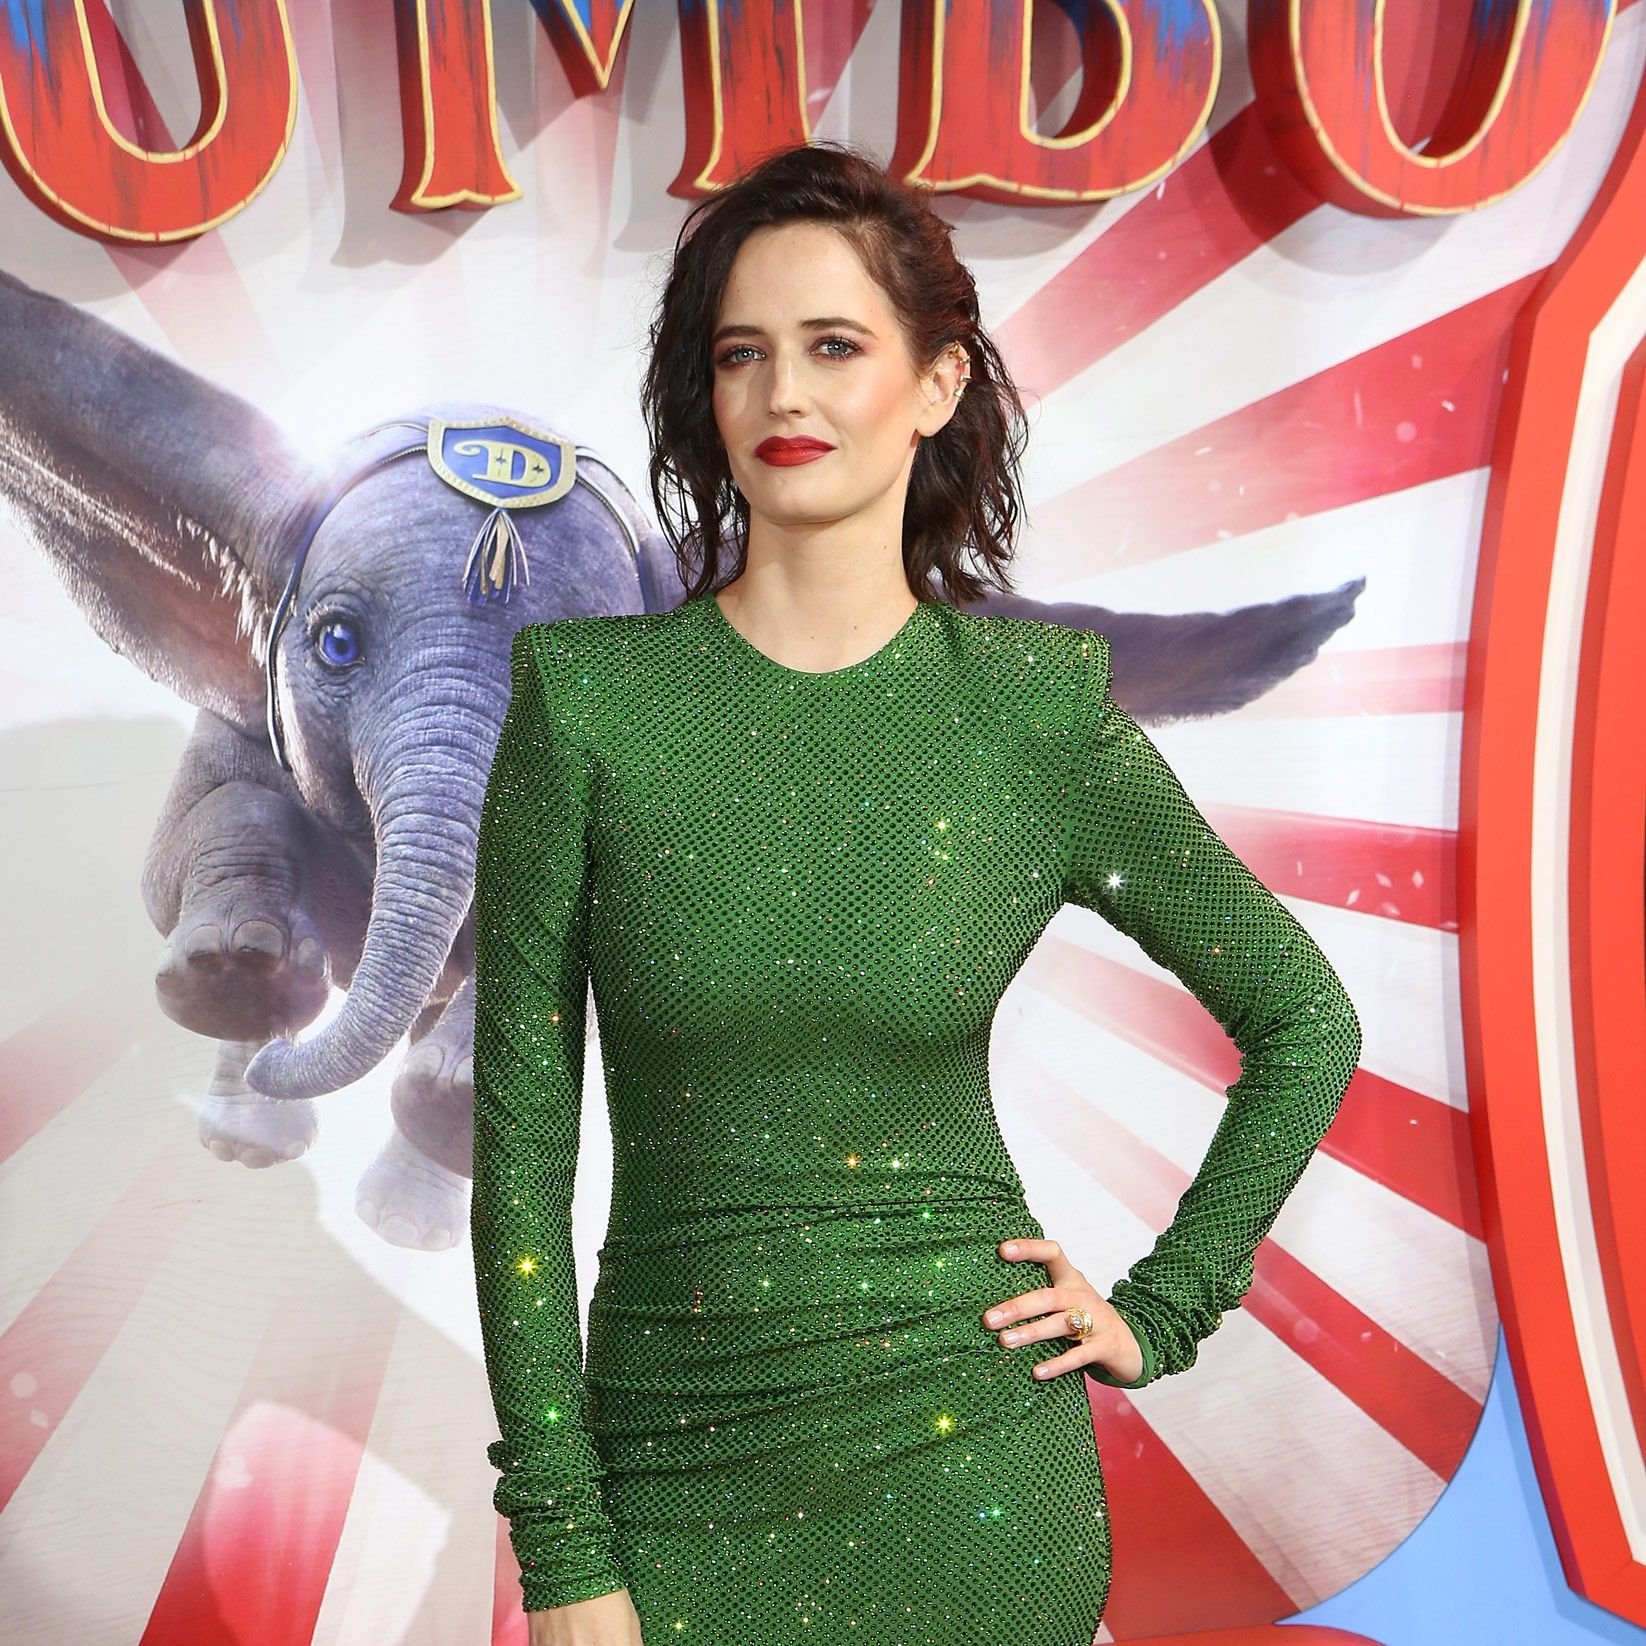 Dumbo's Eva Green hands her used chewing gum to an assistant on the red carpet